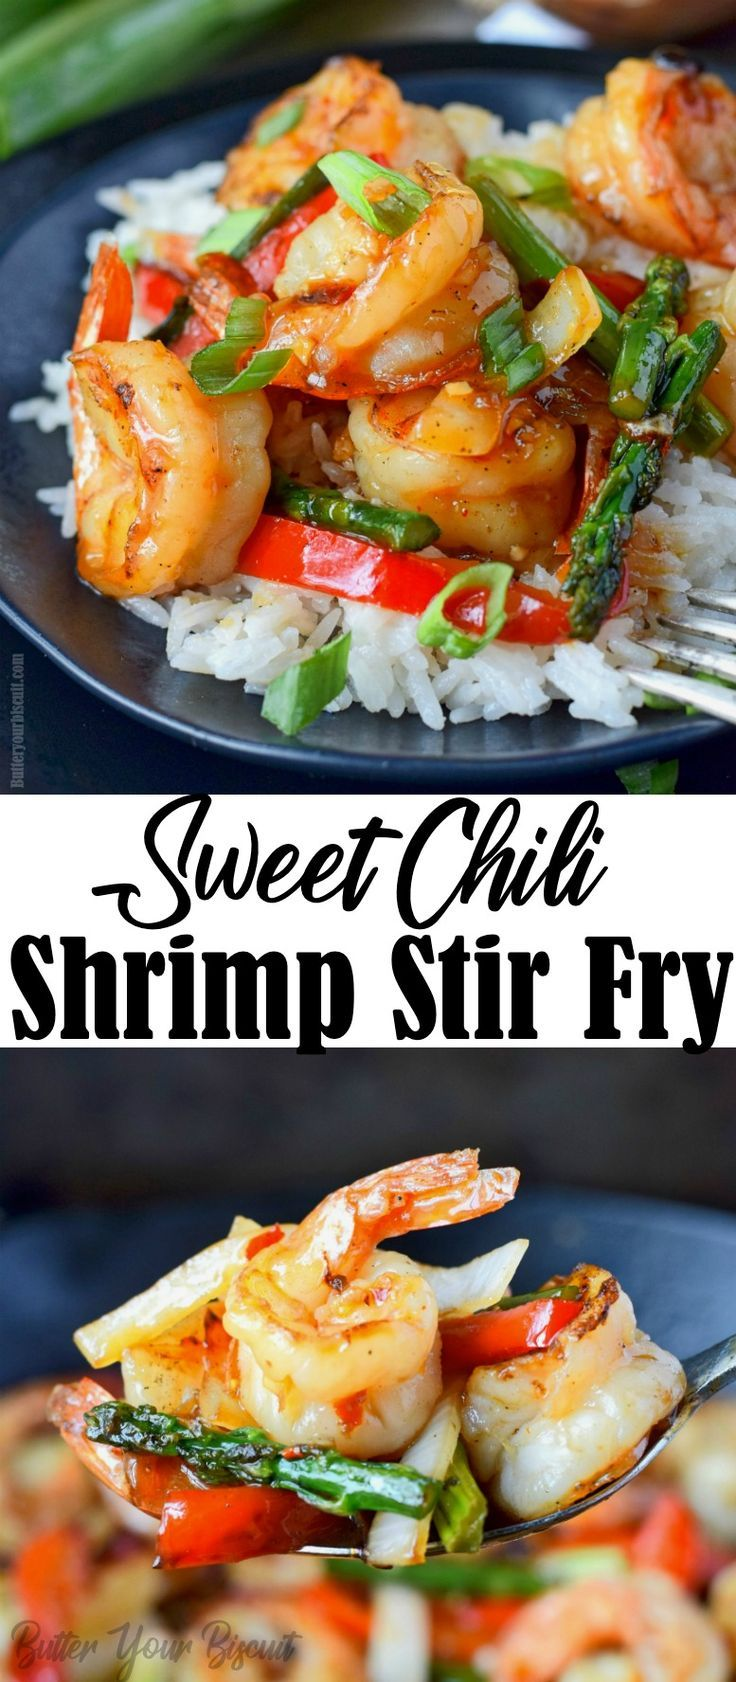 Sweet Chili Shrimp Stir Fry Easy Recipe - Butter Your Biscuit